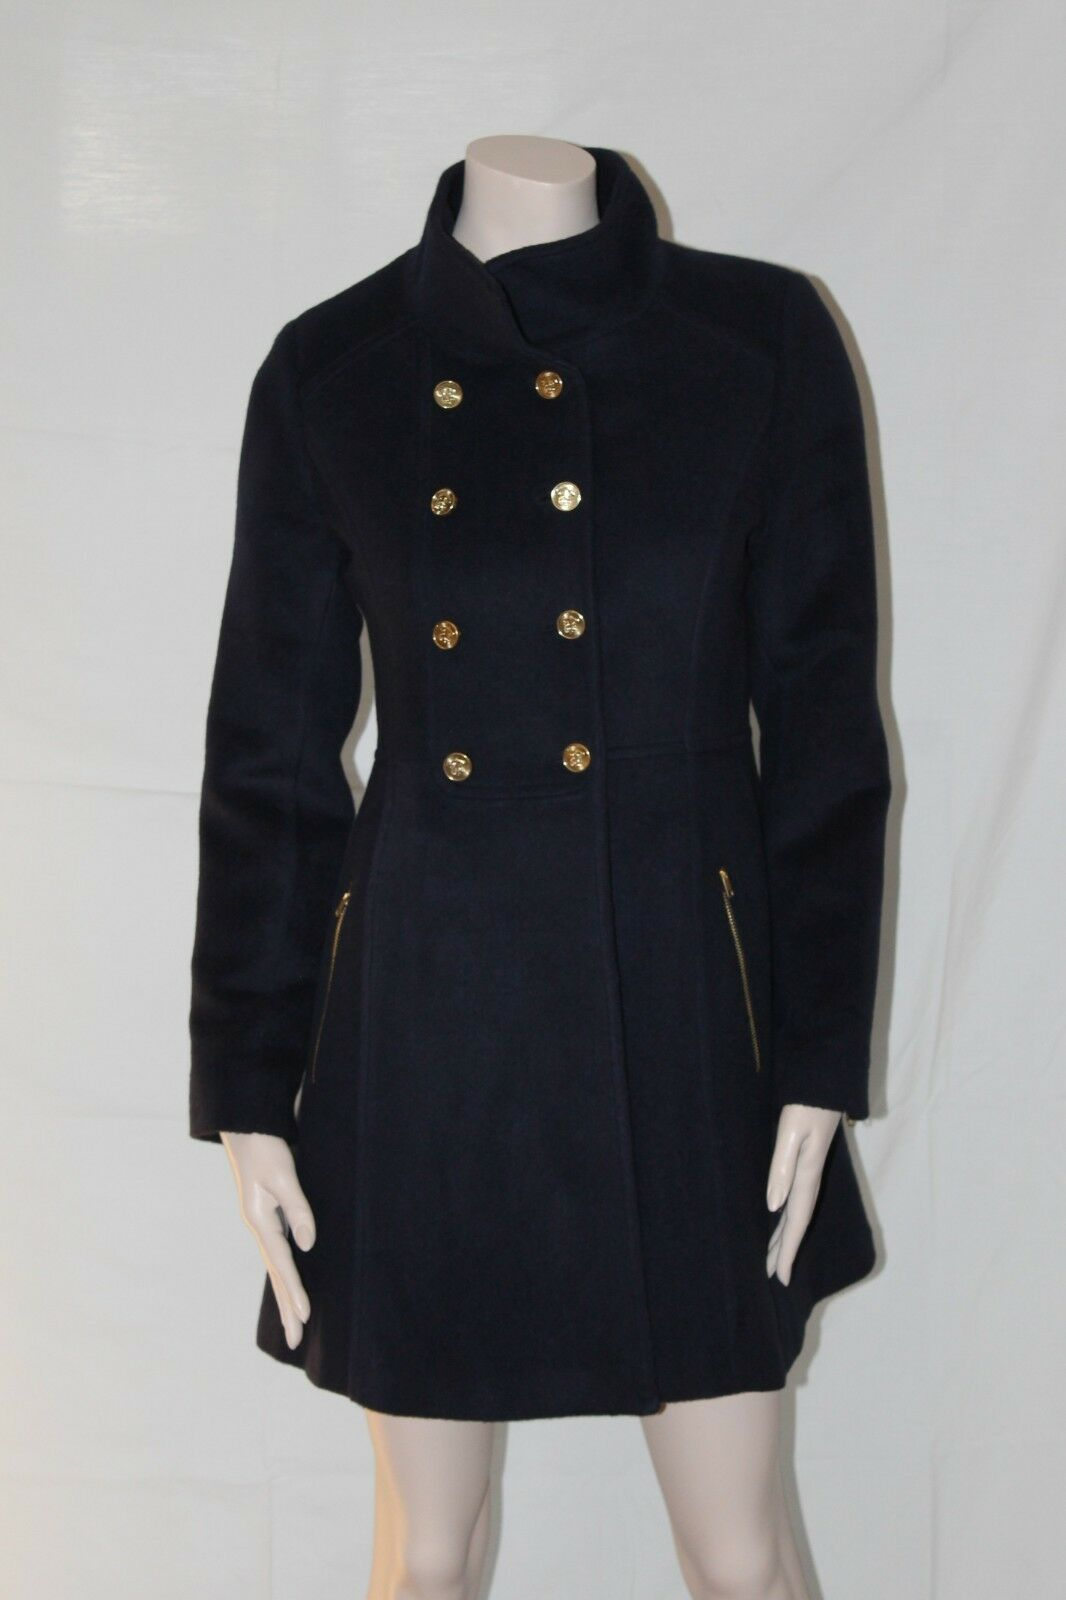 Women's fine baby alpaca military coat size L, bluee, new, peruvian made